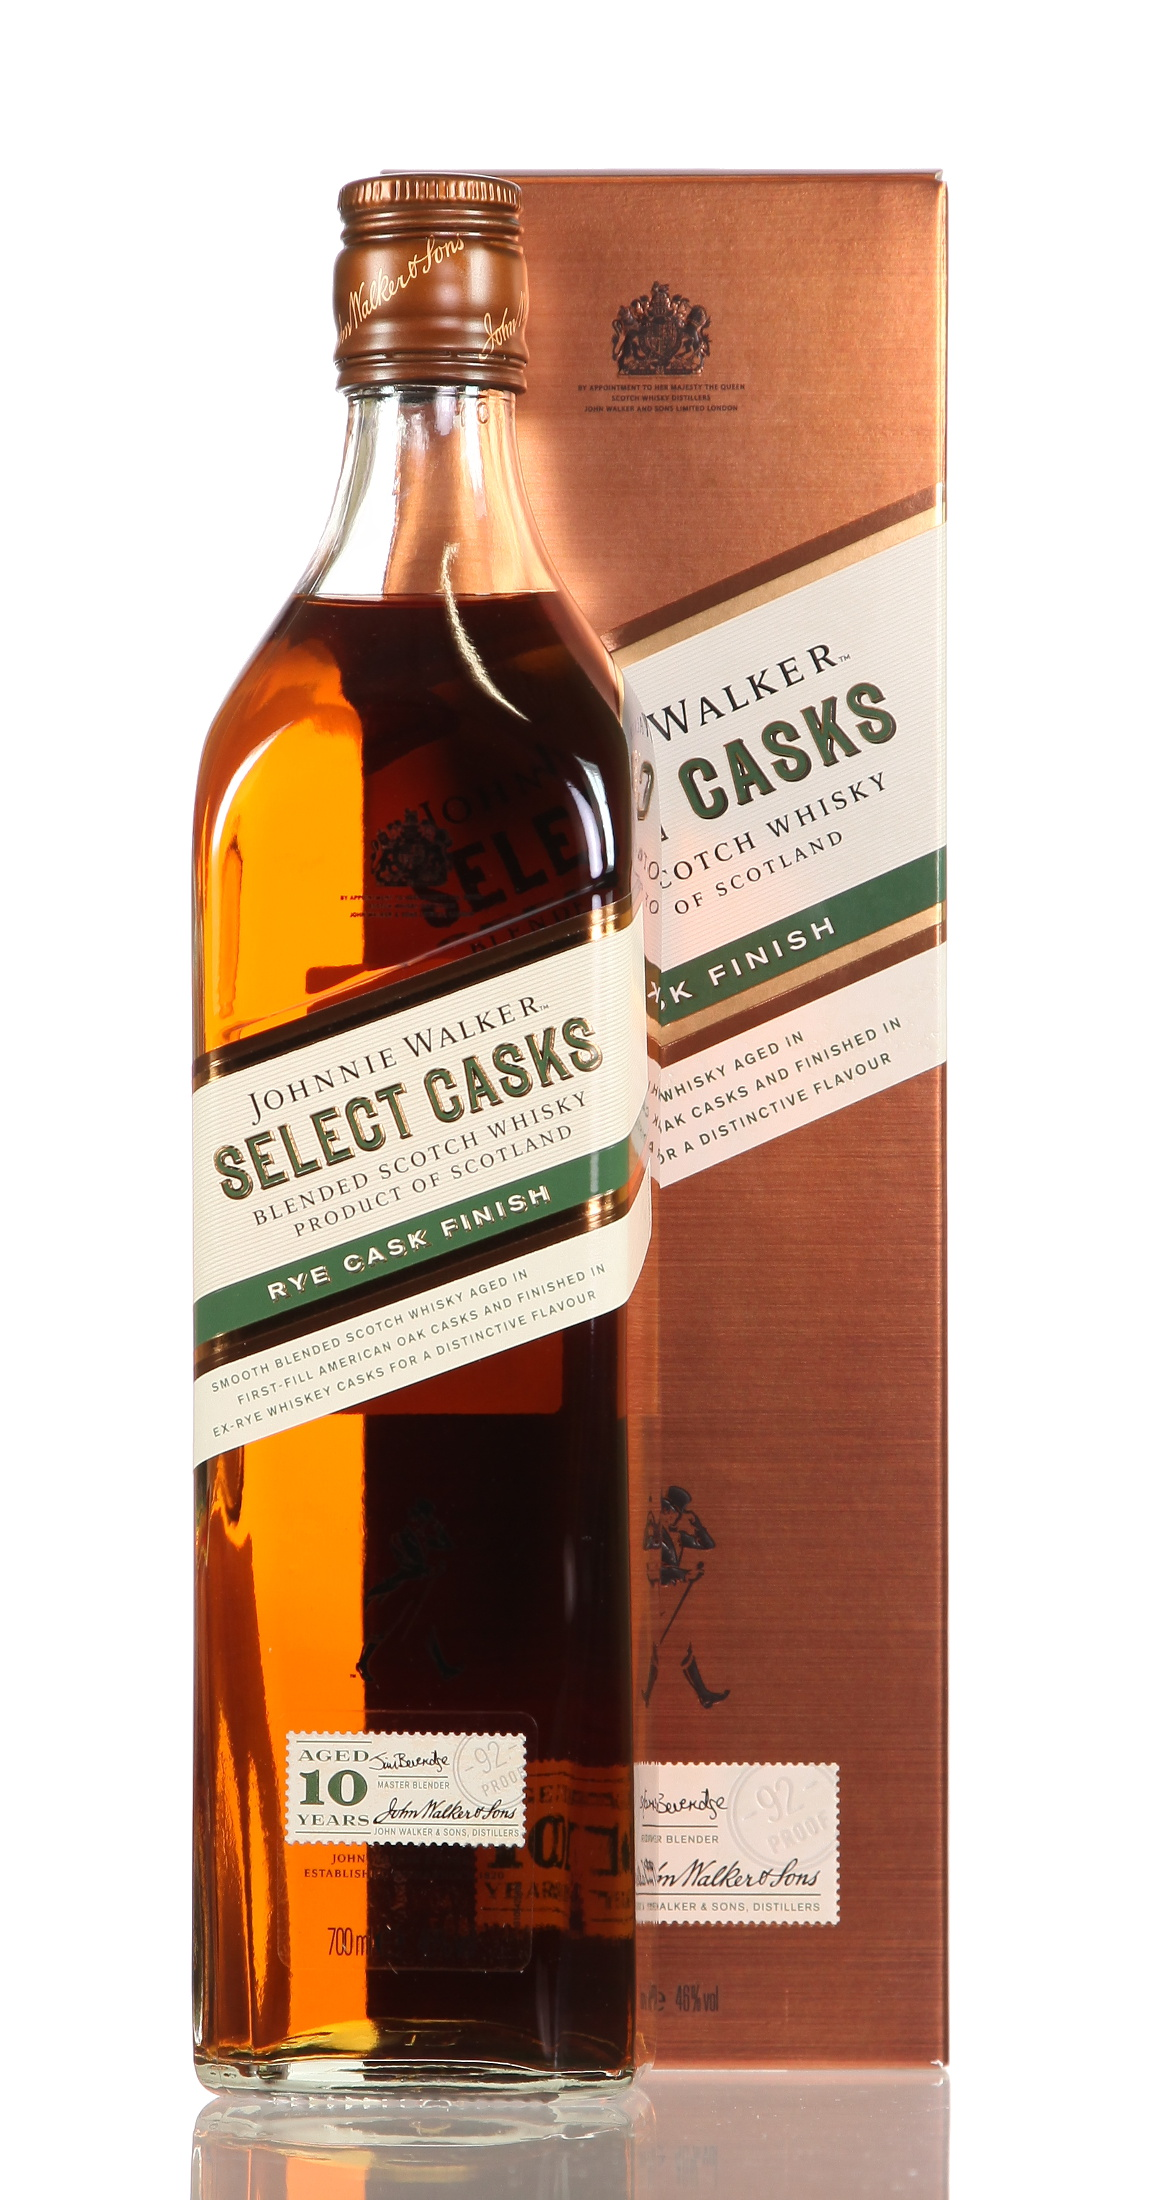 Johnnie Walker Select Casks - Rye Finish